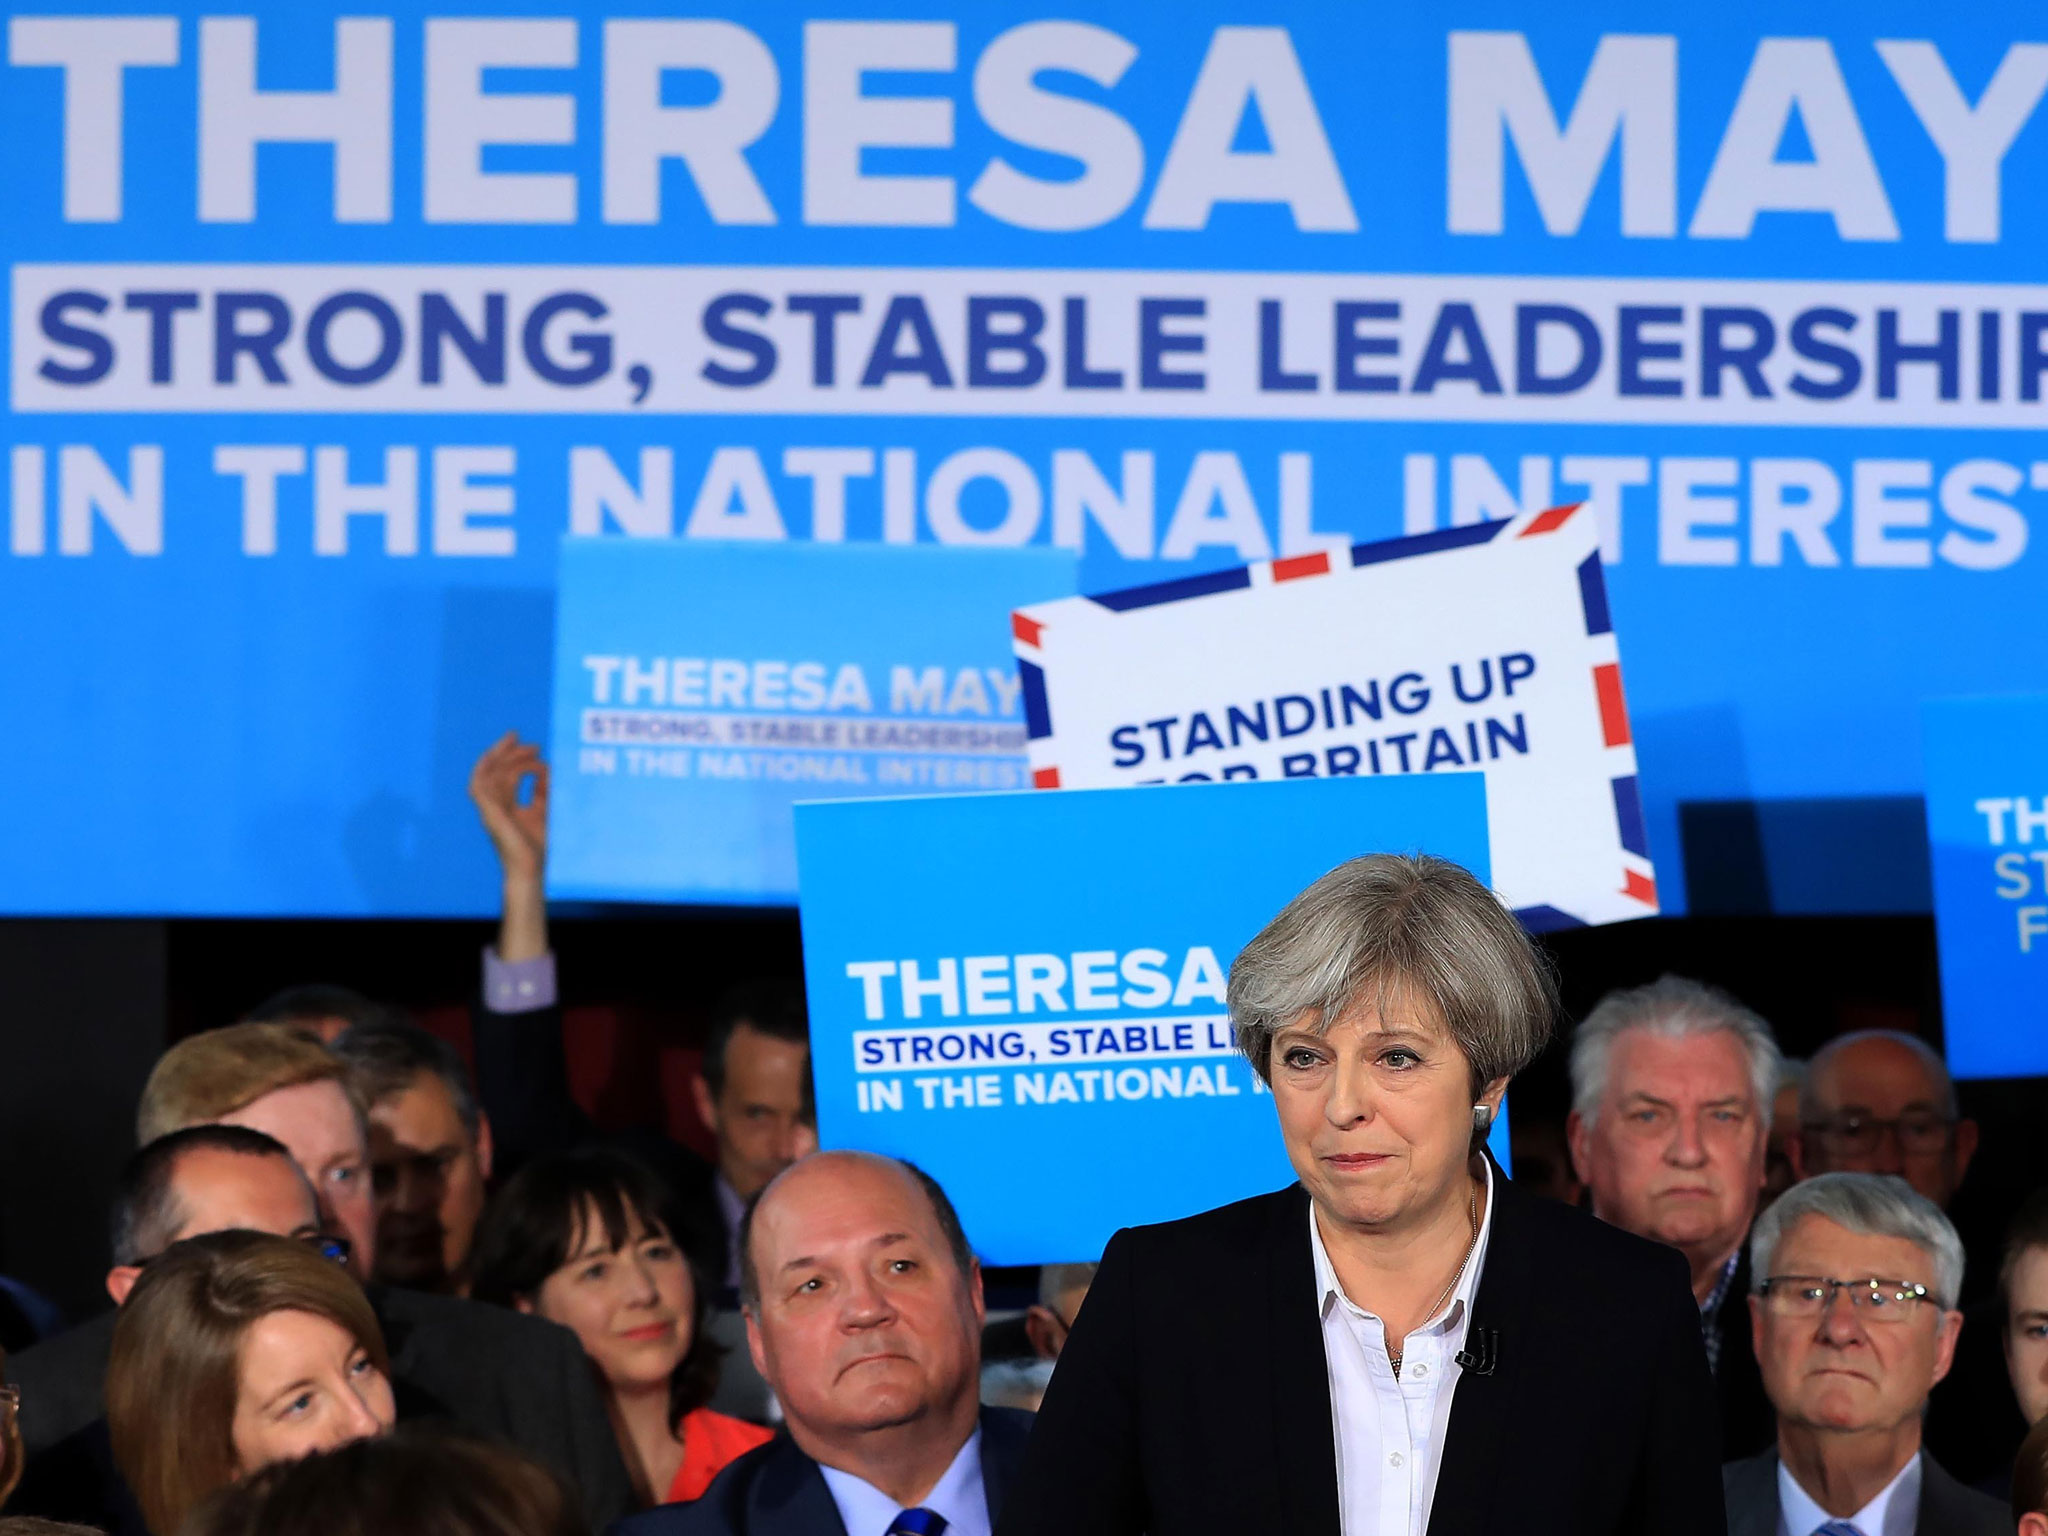 Strong and stable, billboard for Theresa May